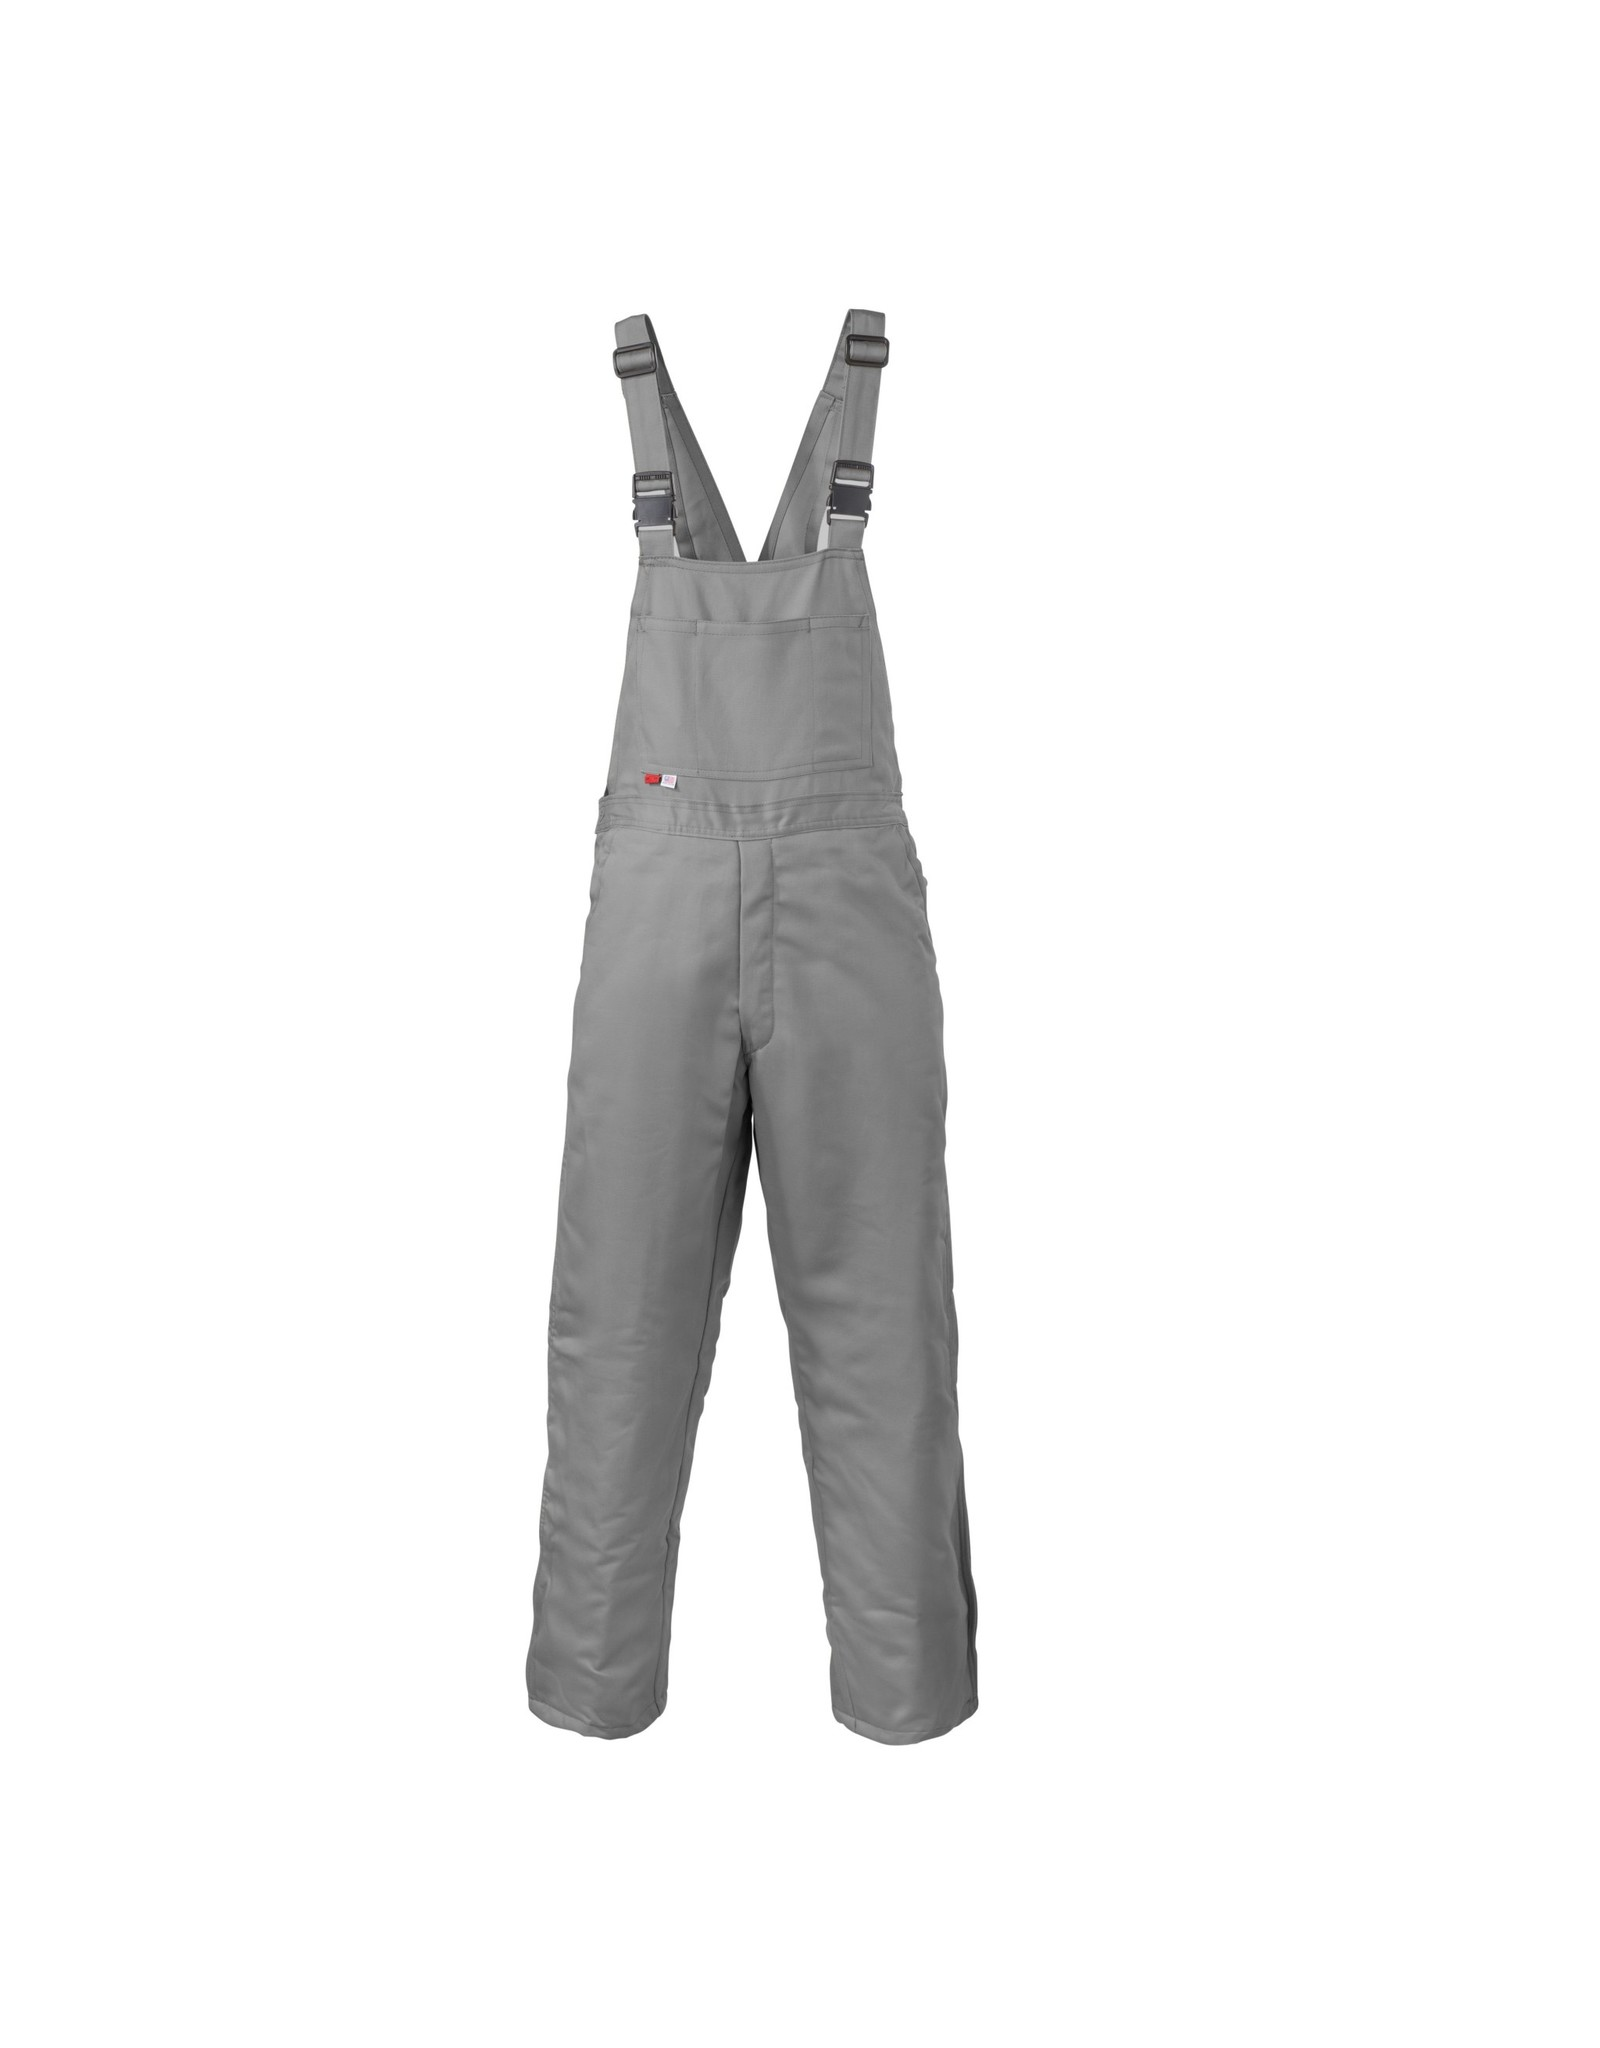 Saf-Tech 9 oz Indura Insulated Bib Overall with 10 oz Moda Quilt Liner - High-Vis